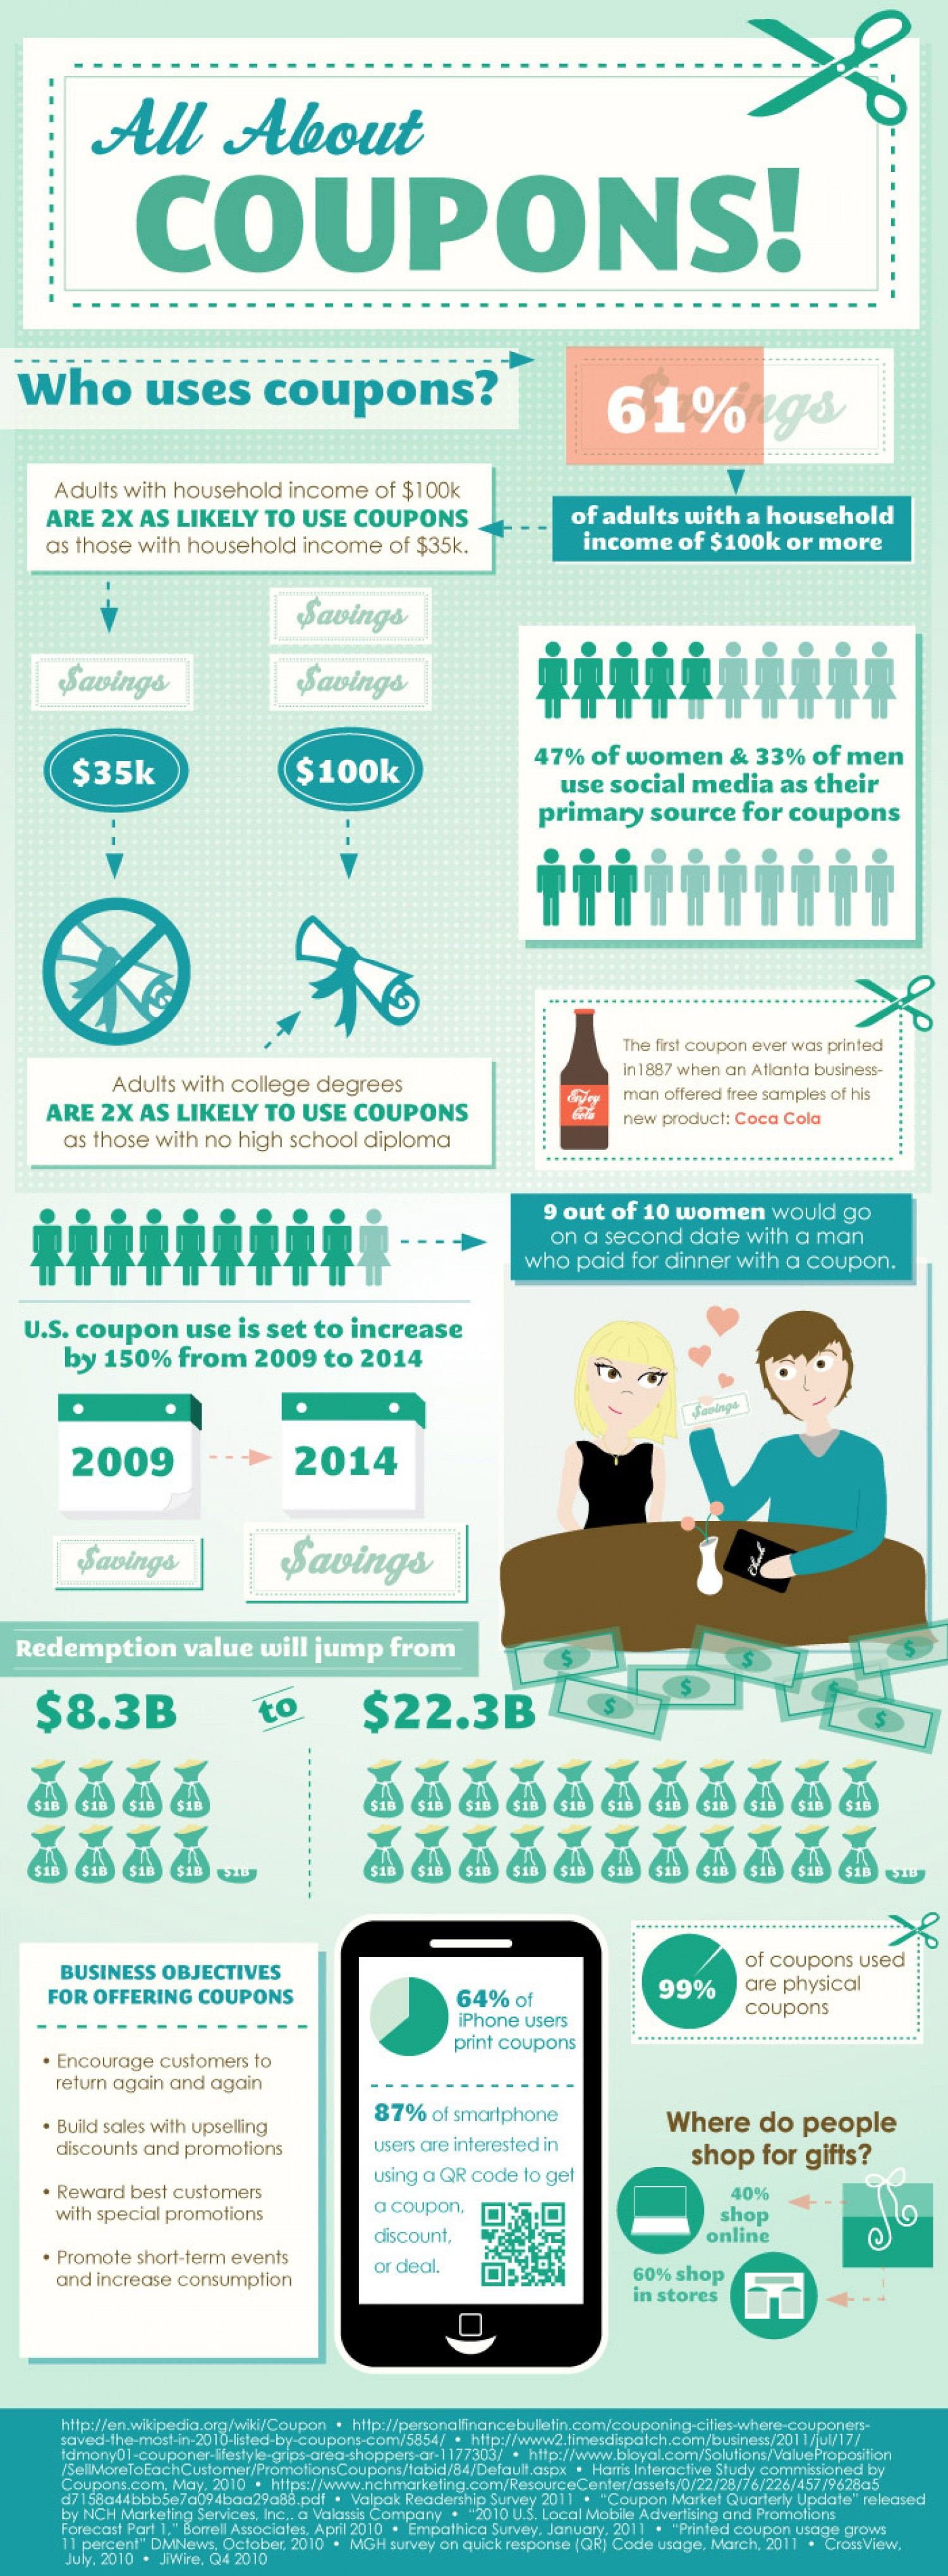 Coupons World | How to save money on coupons. Infographic